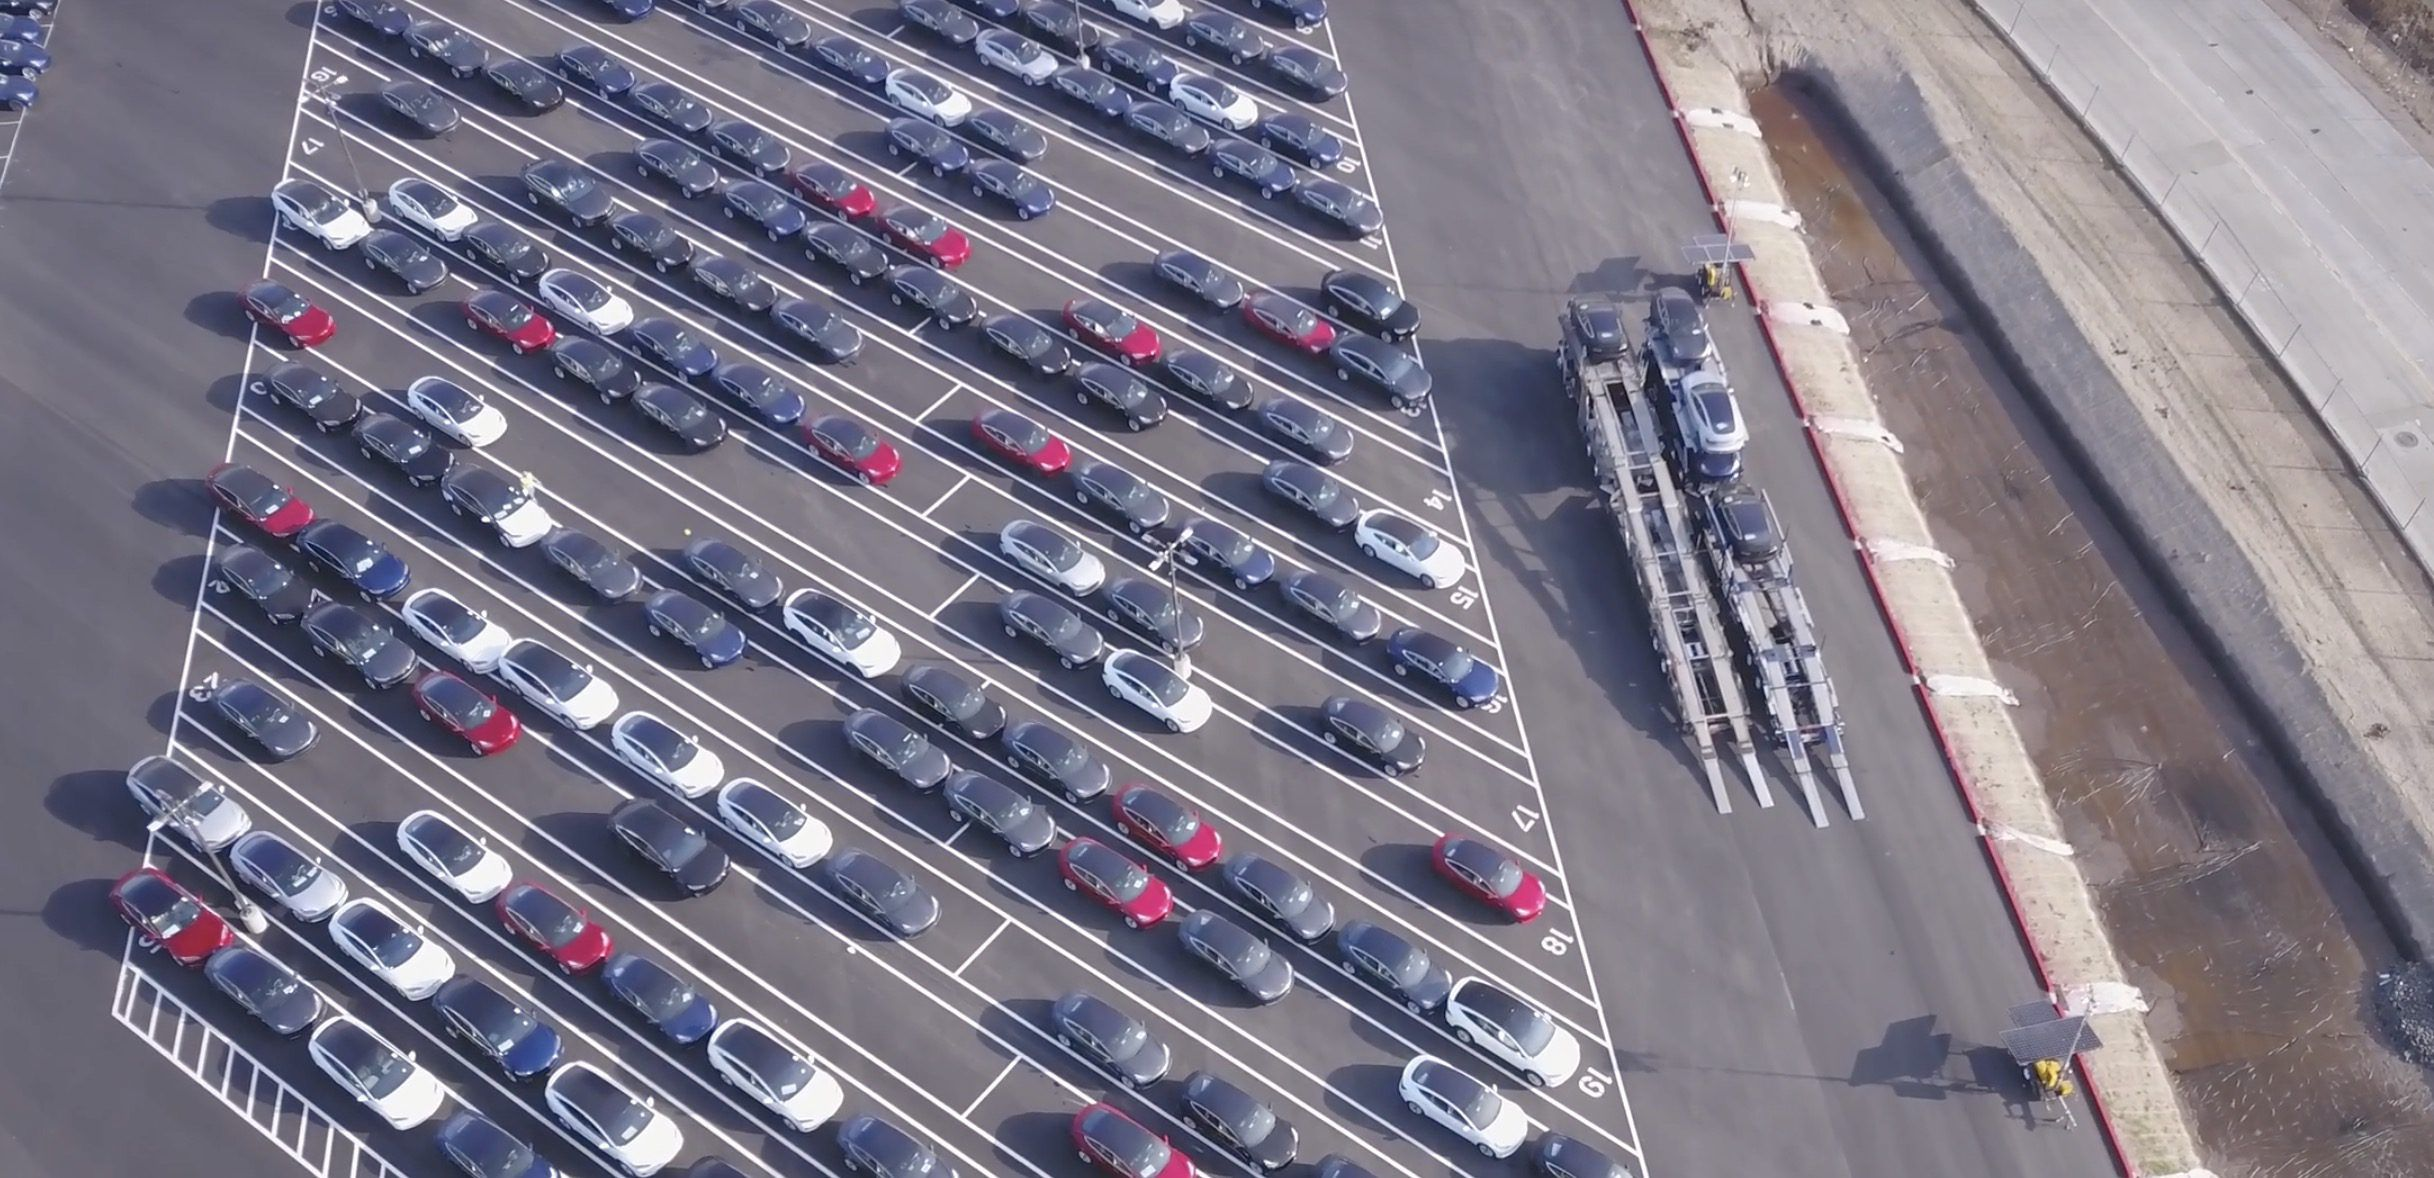 Tesla's (TSLA) delayed Model 3 ramp up is still '2x ahead